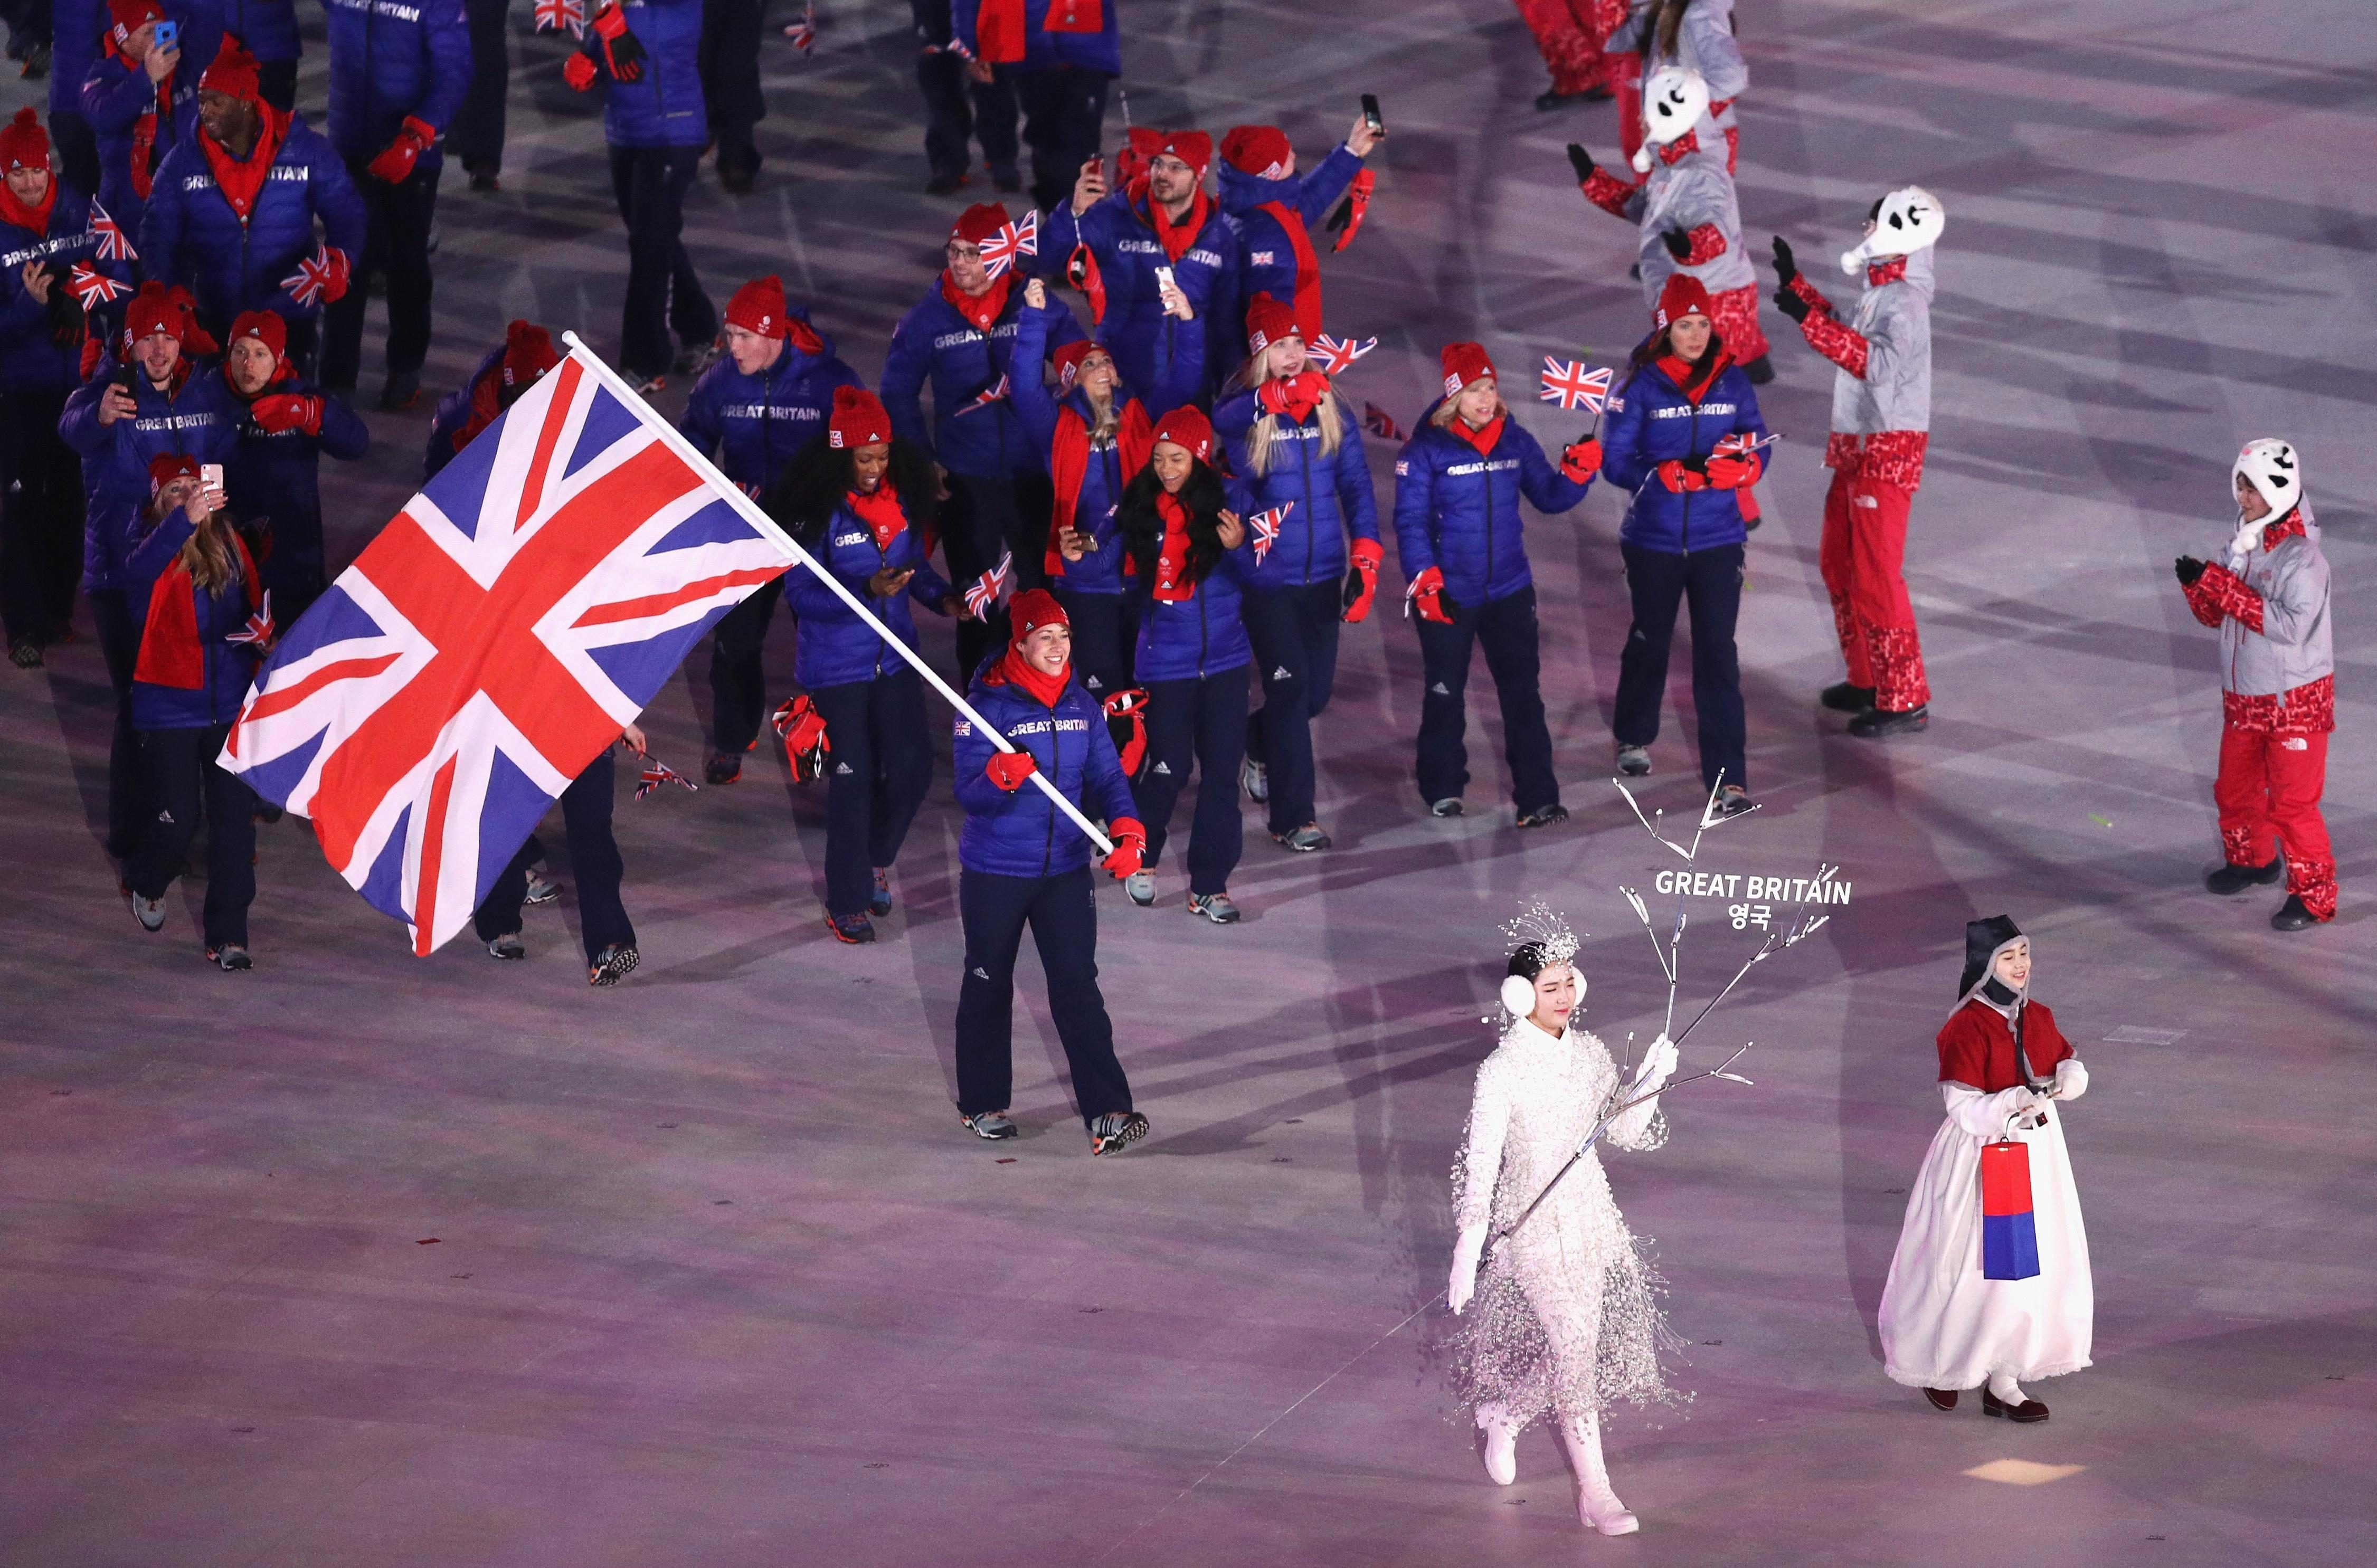 Lizzy Yarnold proudly flies the flag for Team GB at the opening ceremony of the Winter Olympics